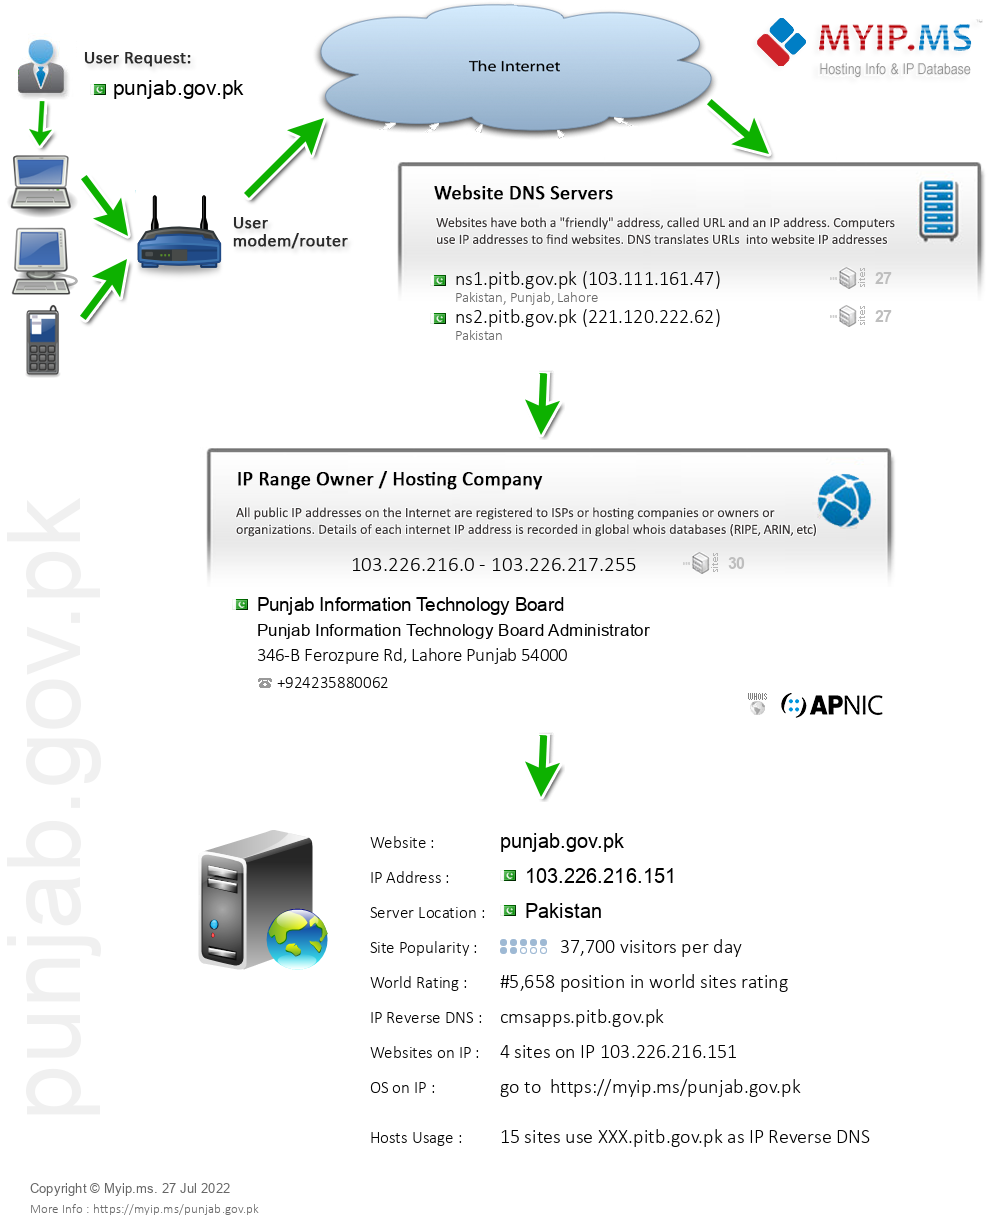 Punjab.gov.pk - Website Hosting Visual IP Diagram